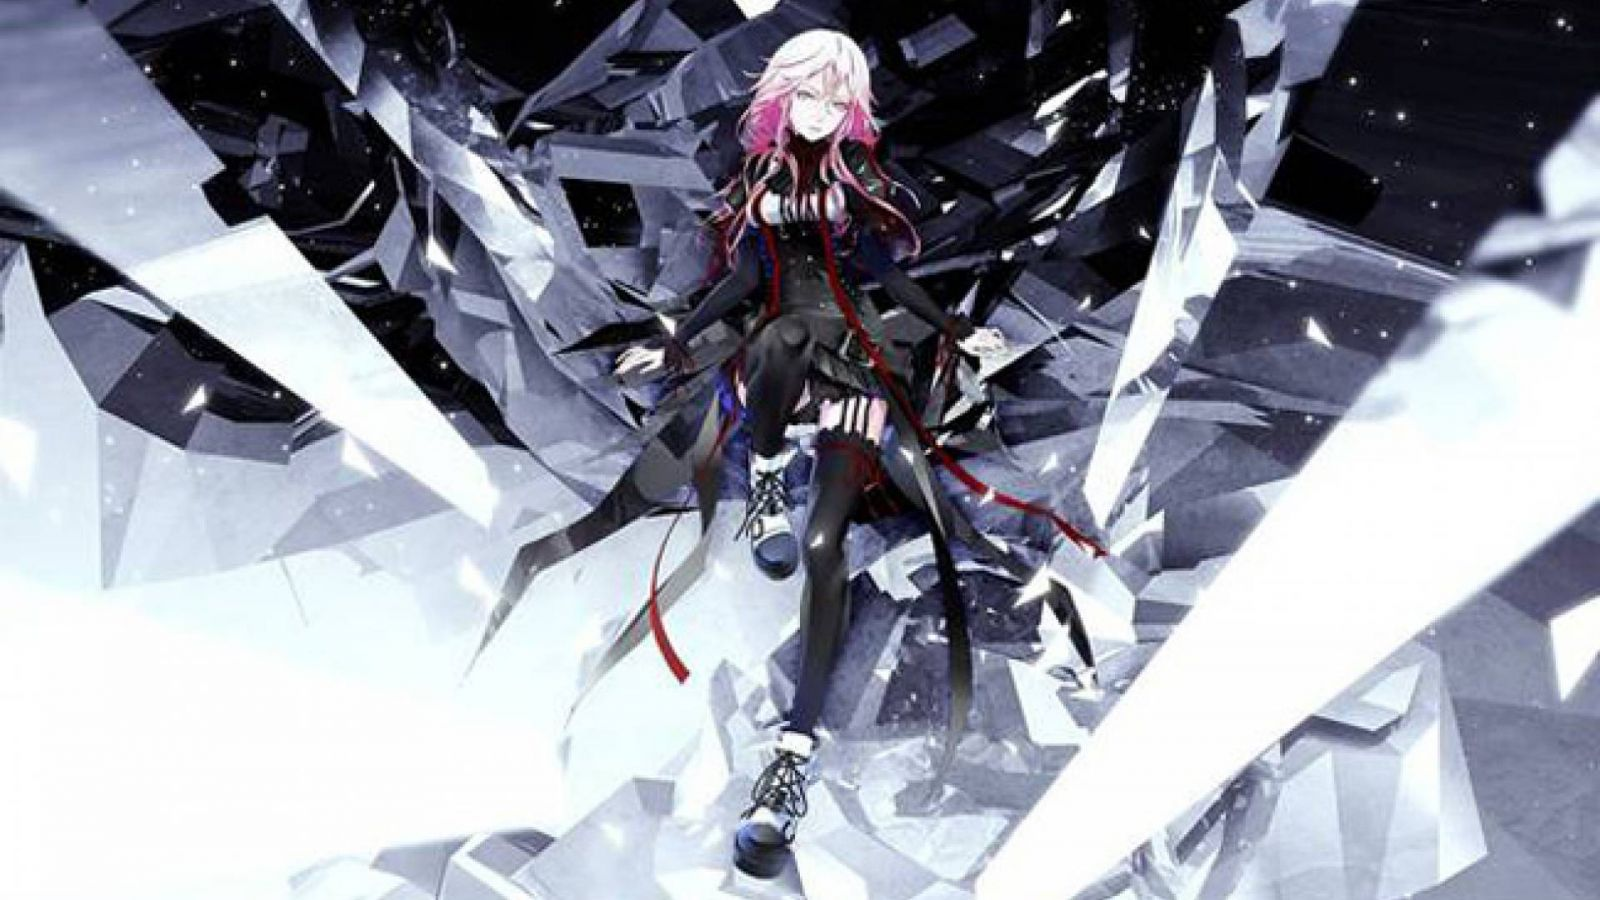 EGOIST © Sony Music Entertainment (Japan) Inc. All rights reserved.